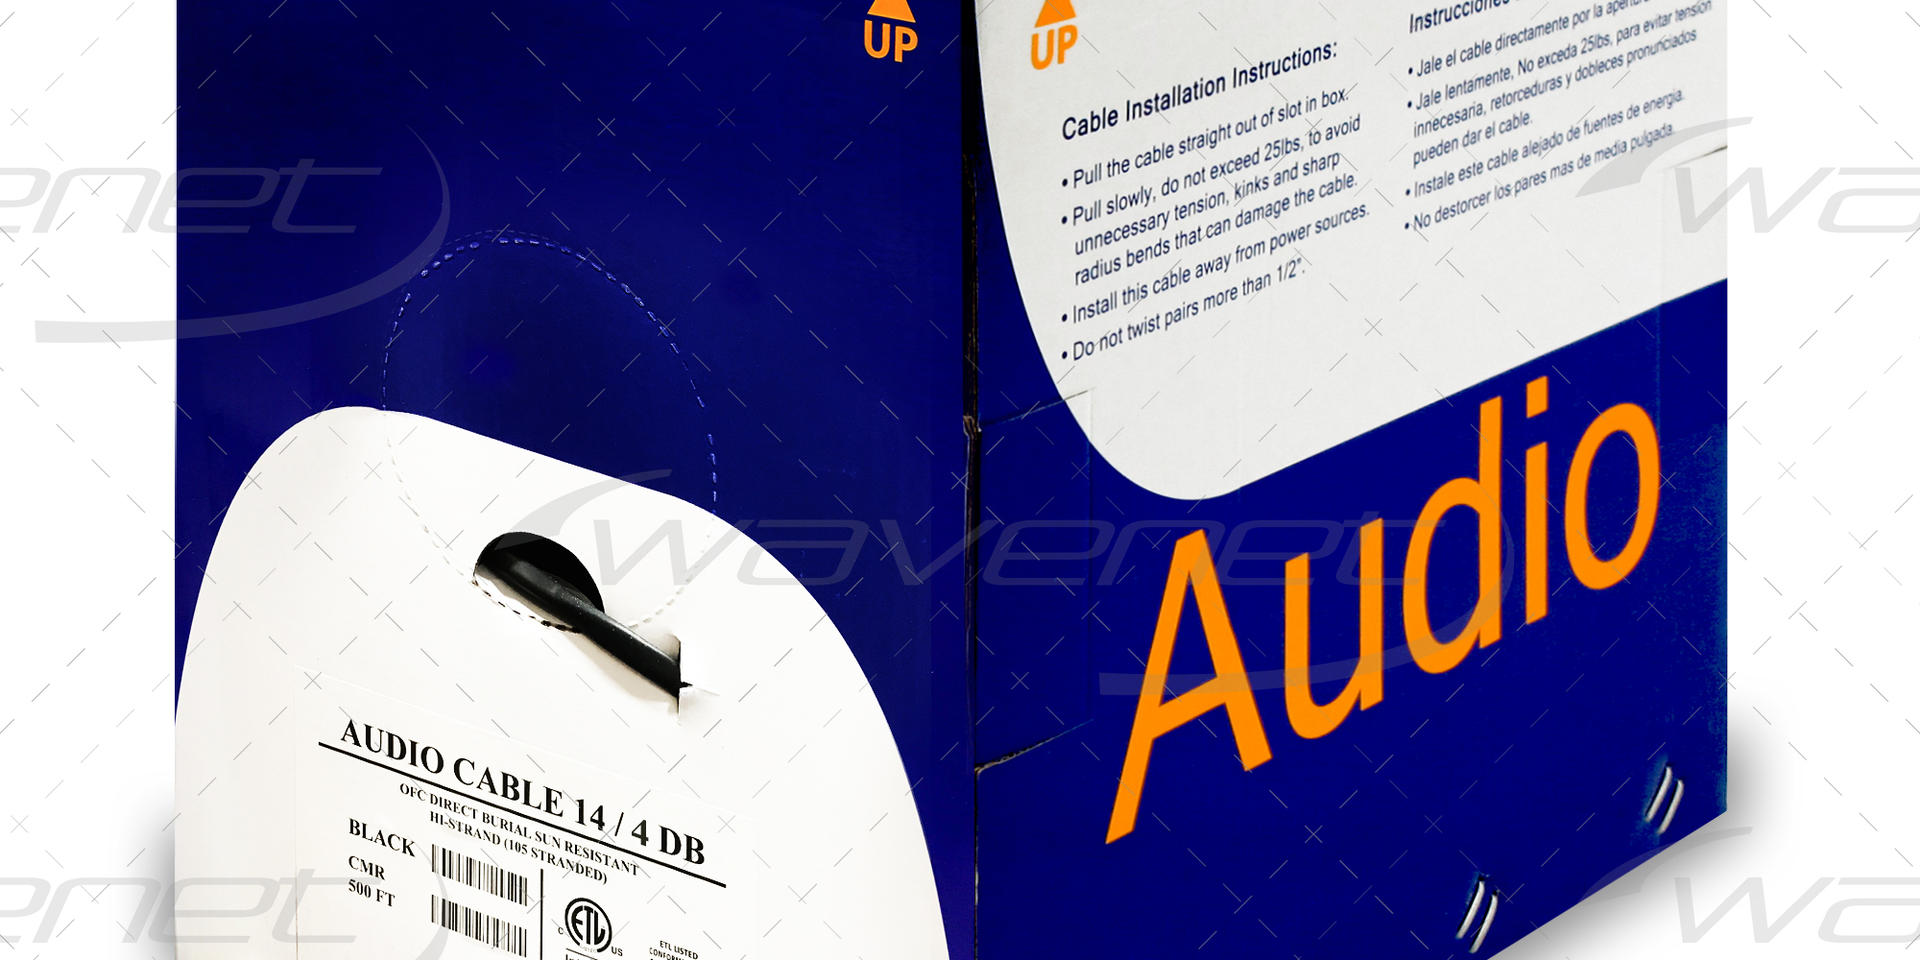 AUDIO CABLE 14/4 DB UV RATED 500'